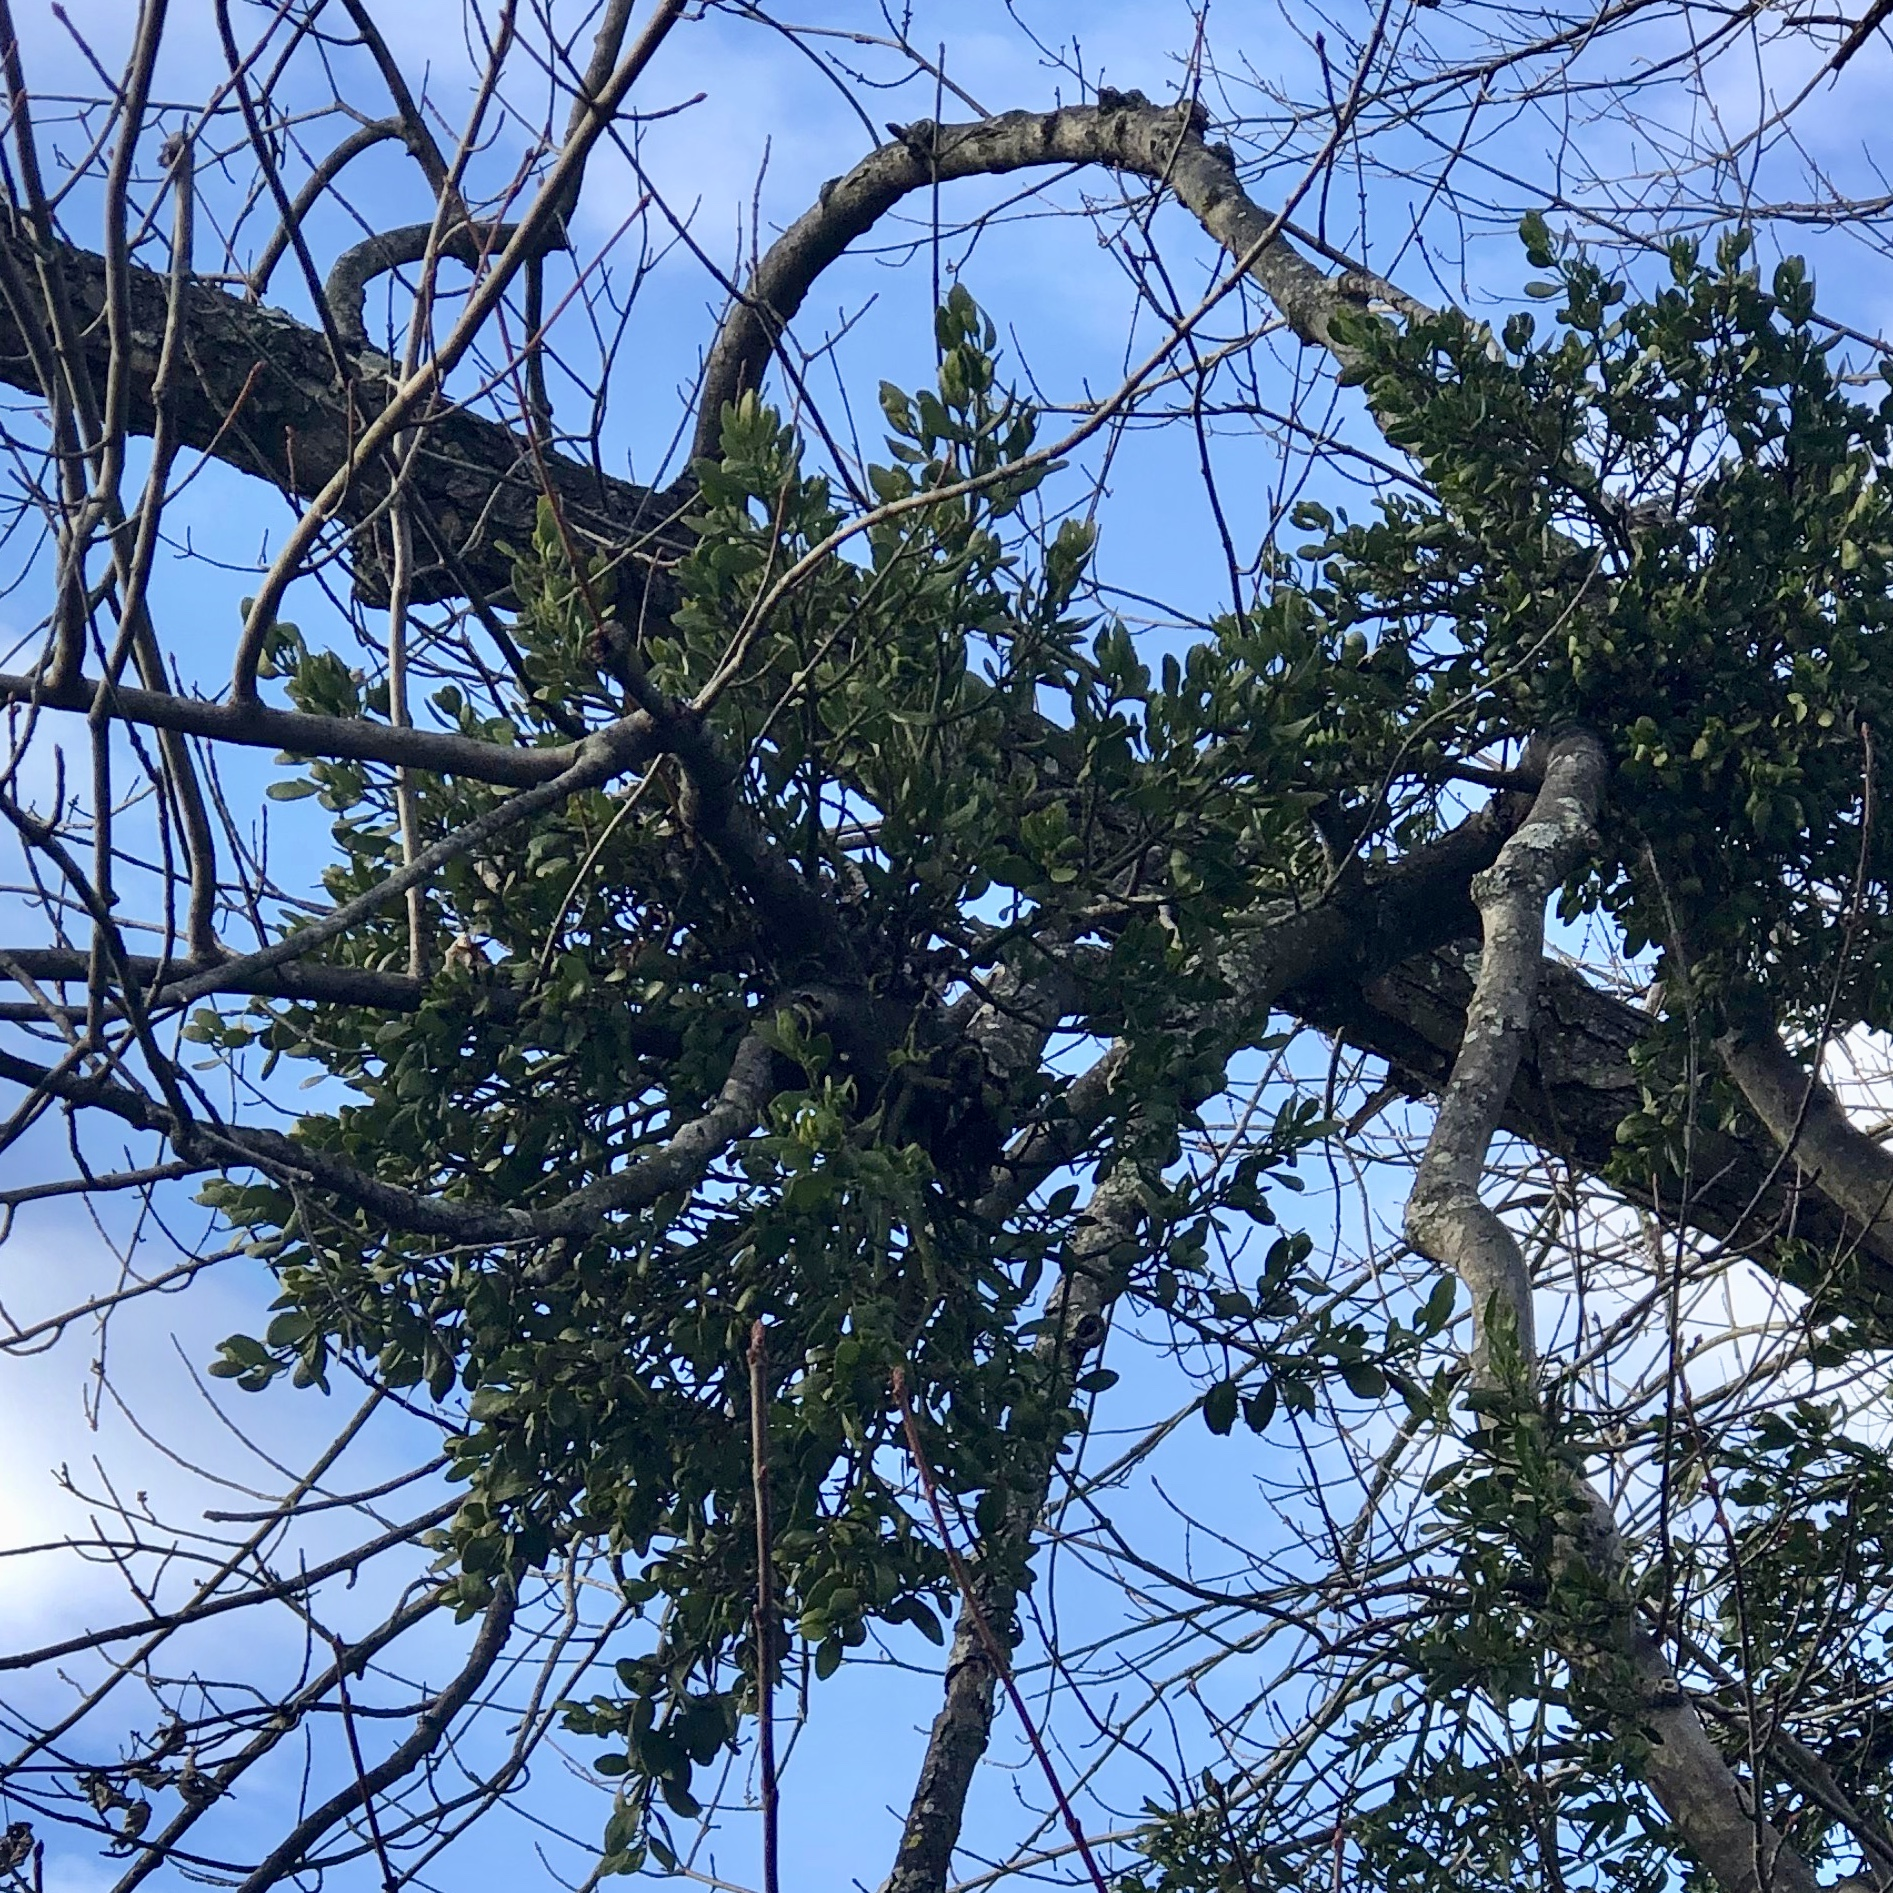 Mistletoe, a storied plant from myths that is actually a parasite